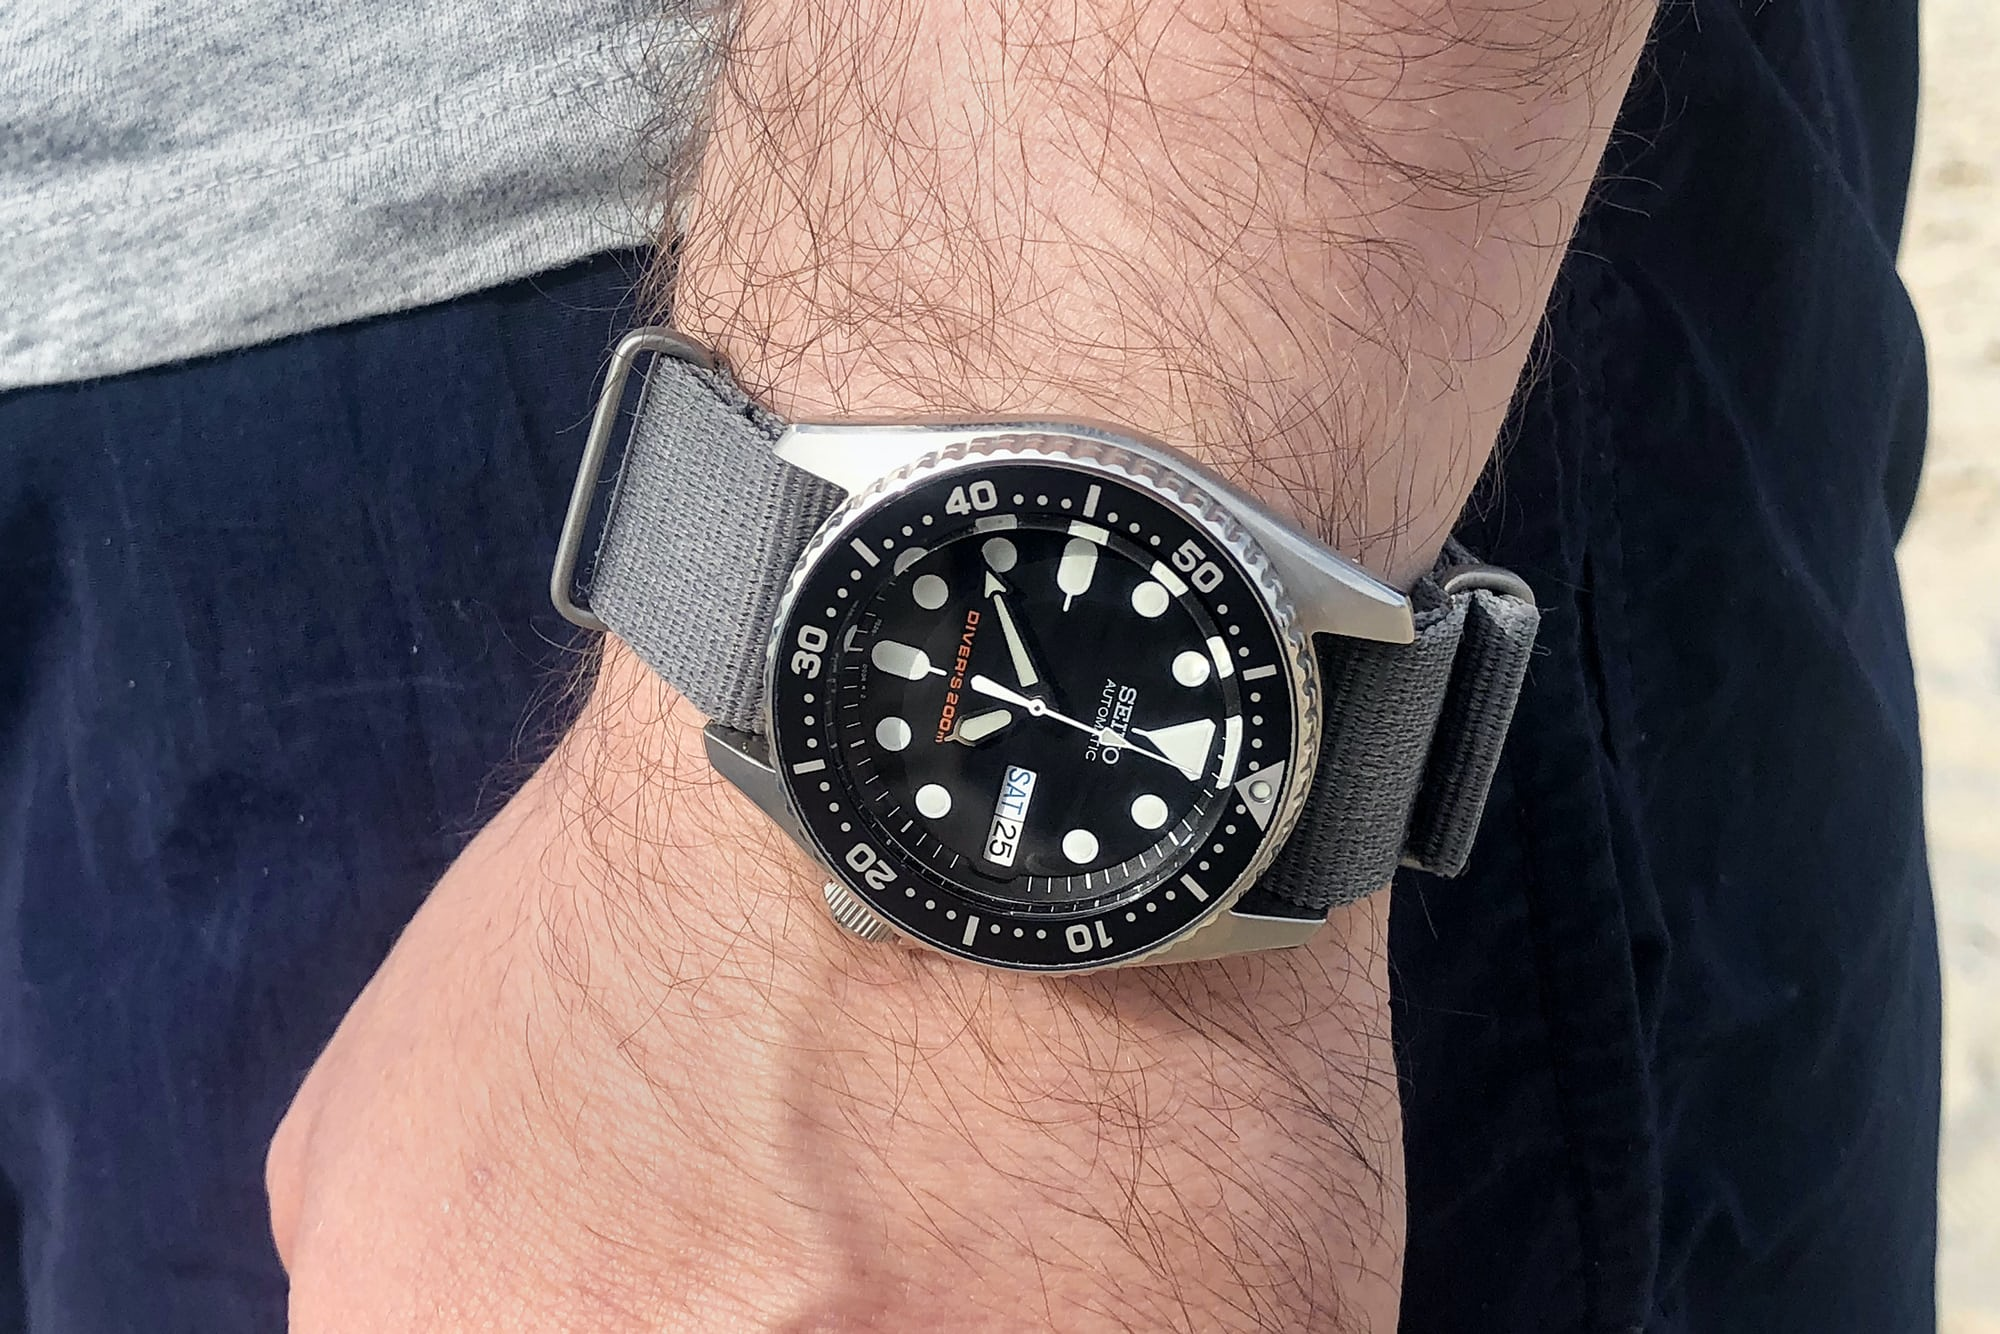 The Value Proposition: The Seiko SKX013 Dive Watch IMG 4644